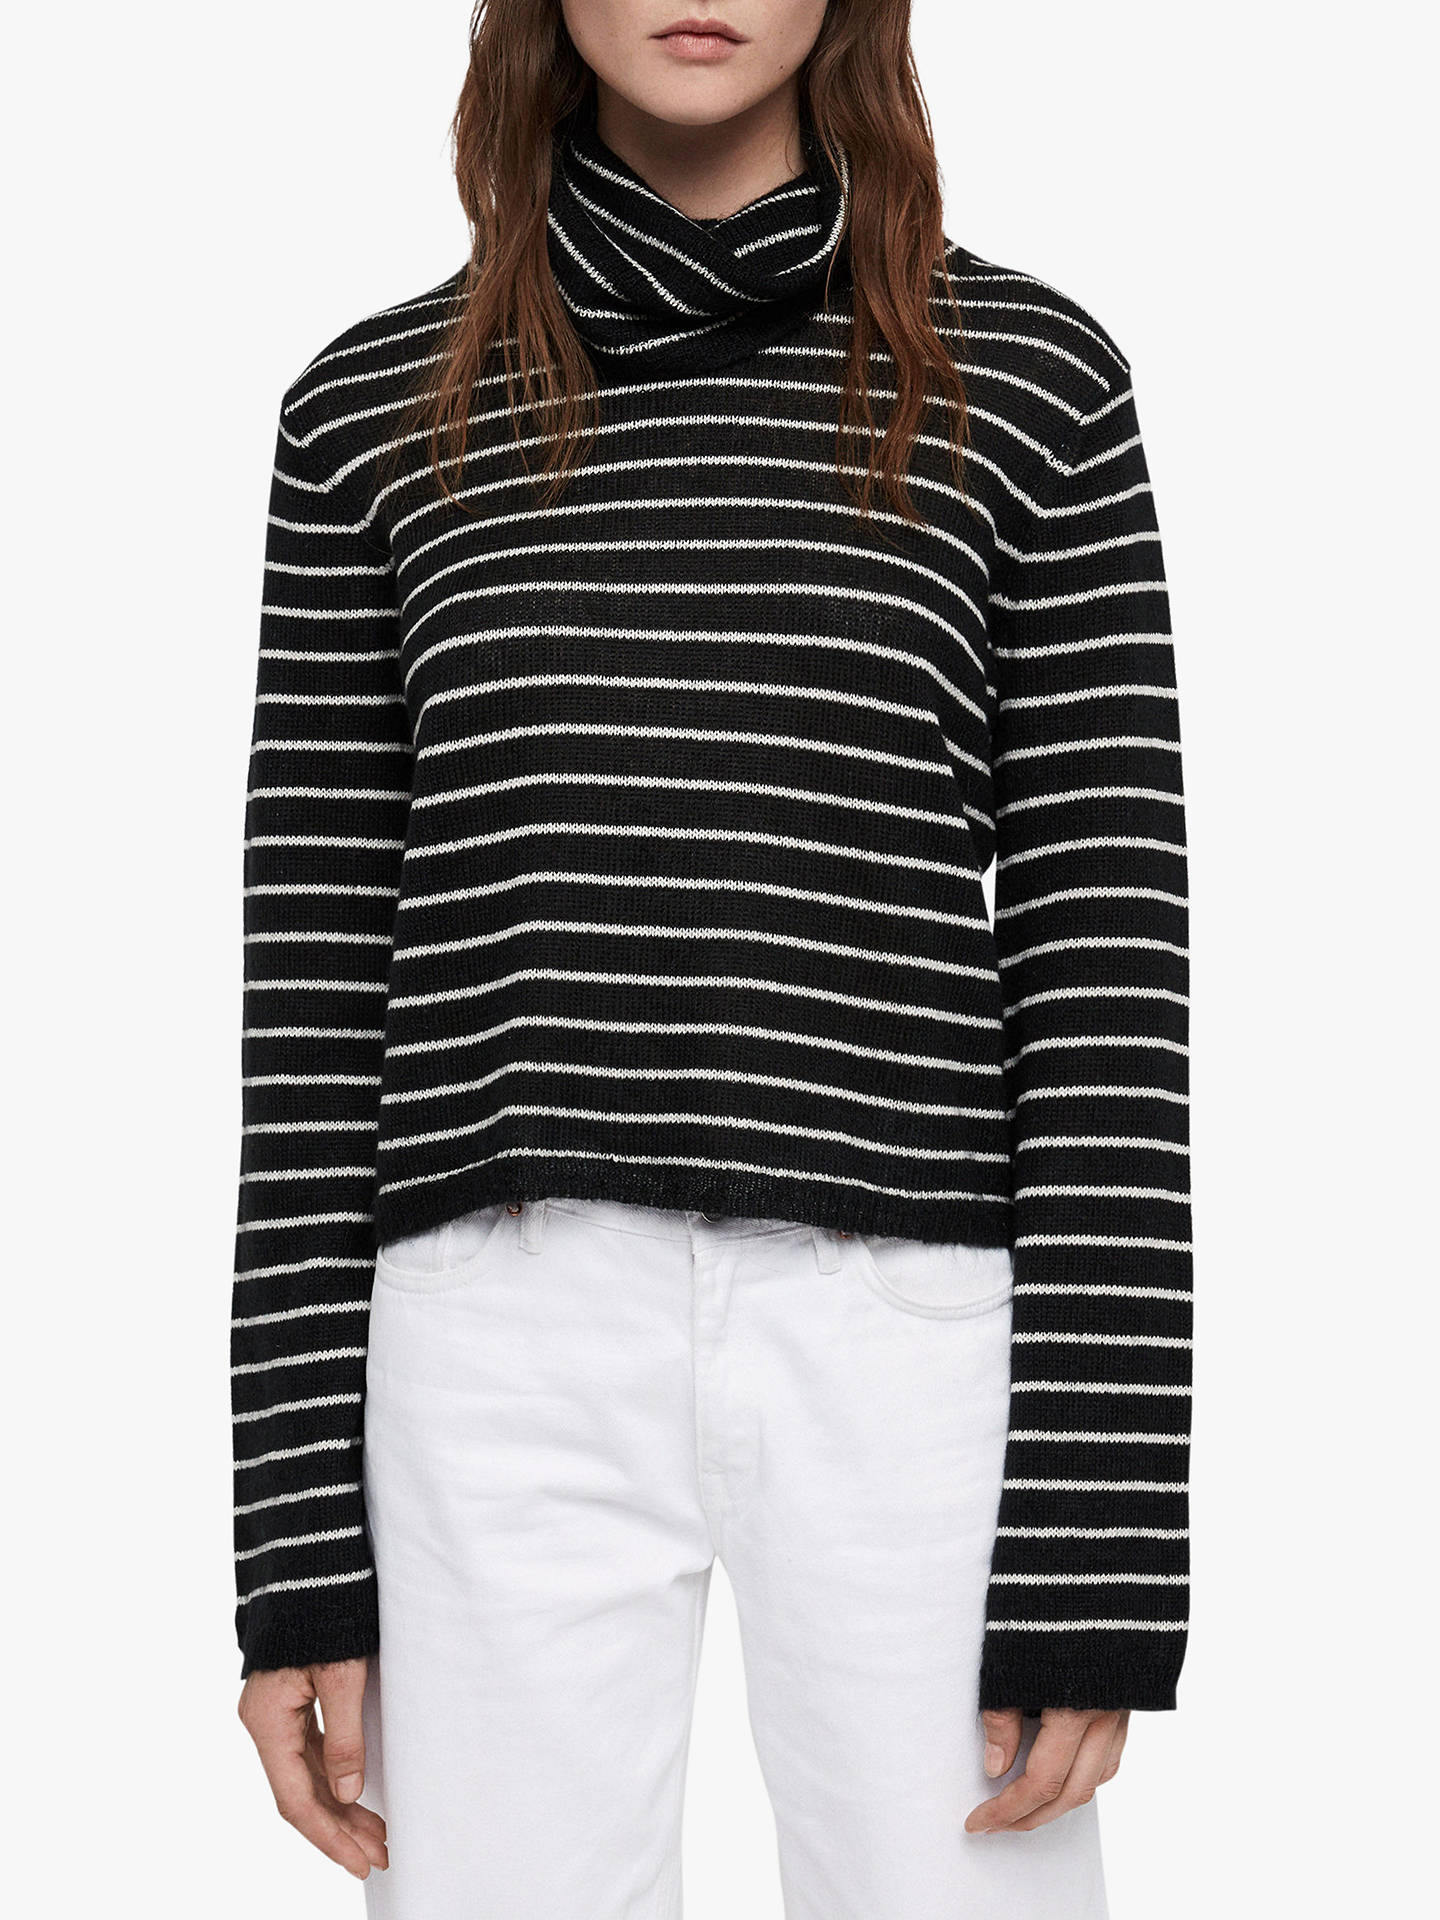 BuyAllSaints Marty Roll Neck Jumper, Black/White, M Online at johnlewis.com